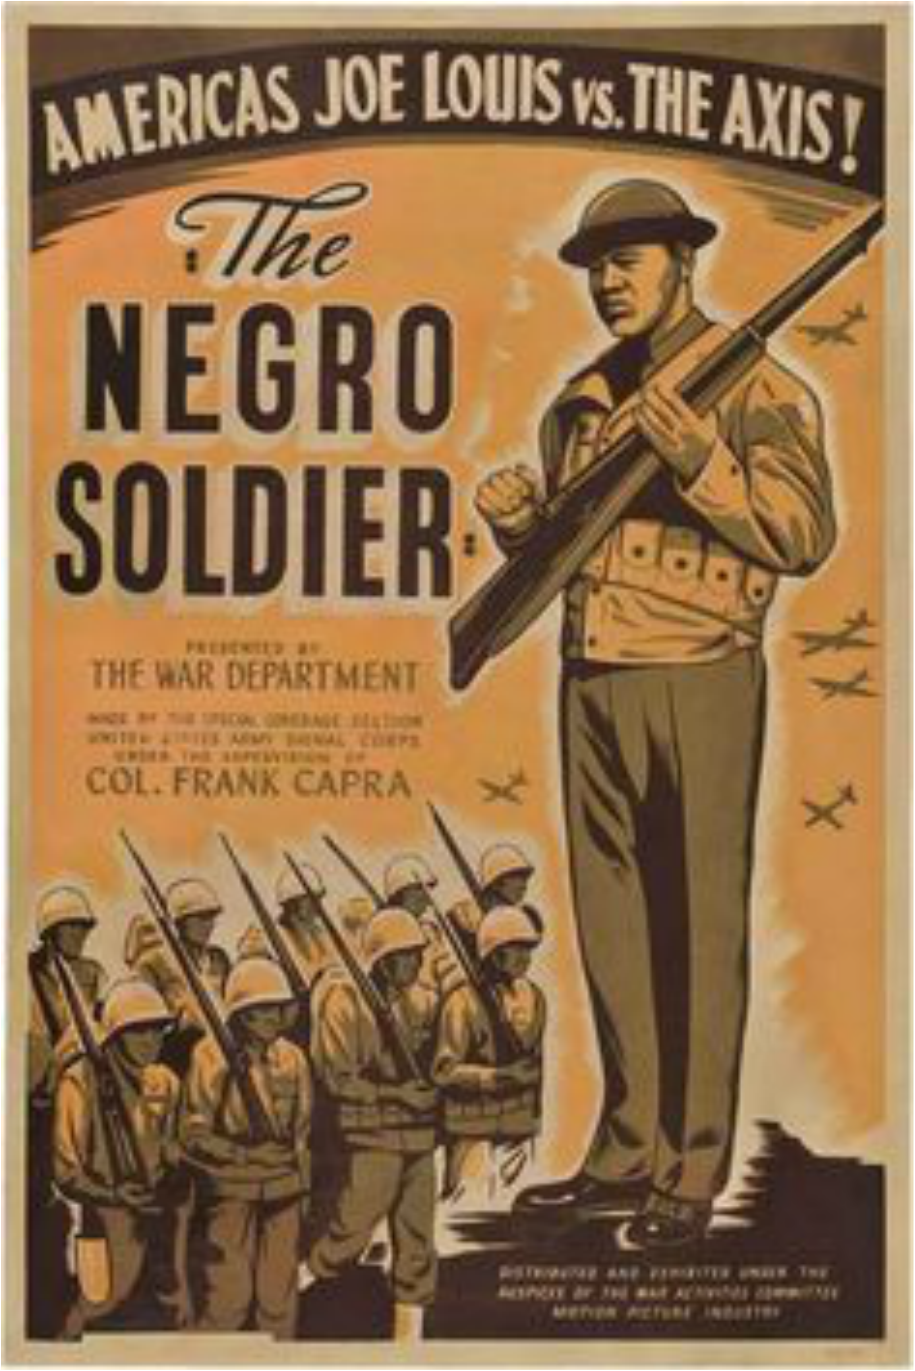 There was no pretense of treating Black soldiers equally